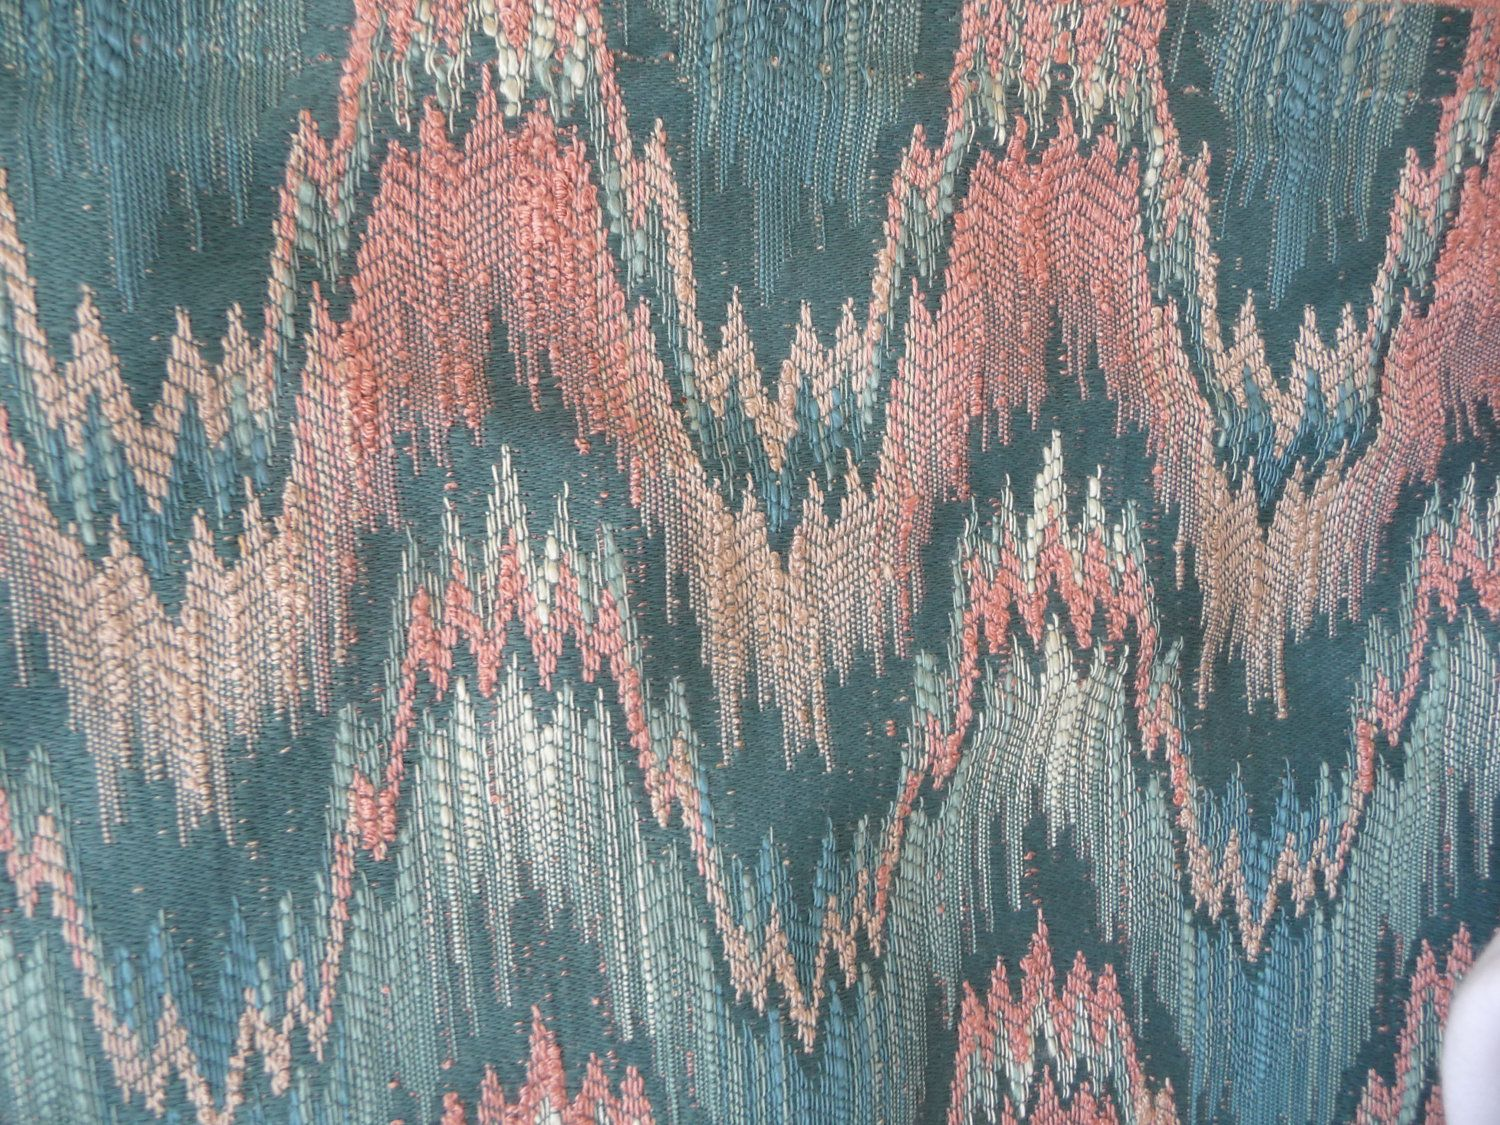 missoni home fabric kew  safarilivingcom  style  pinterest  - missoni like fabric flame stitch ikat zig zag pink teal upholstery by theyard chevron